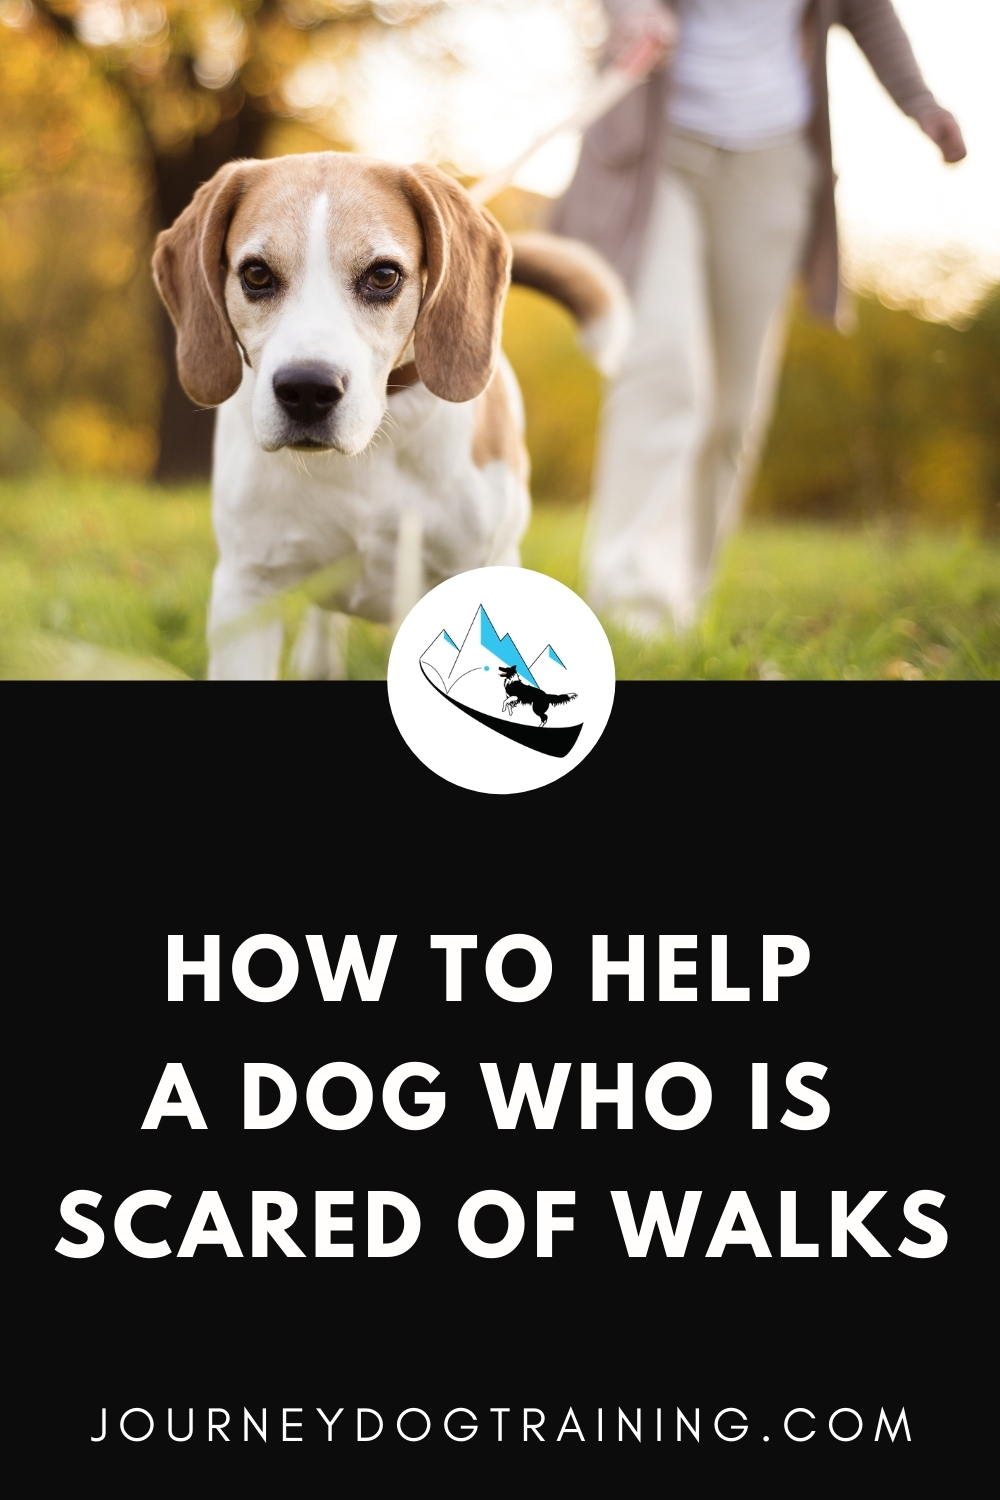 how to help a dog who is scared of walks | journeydogtraining.com